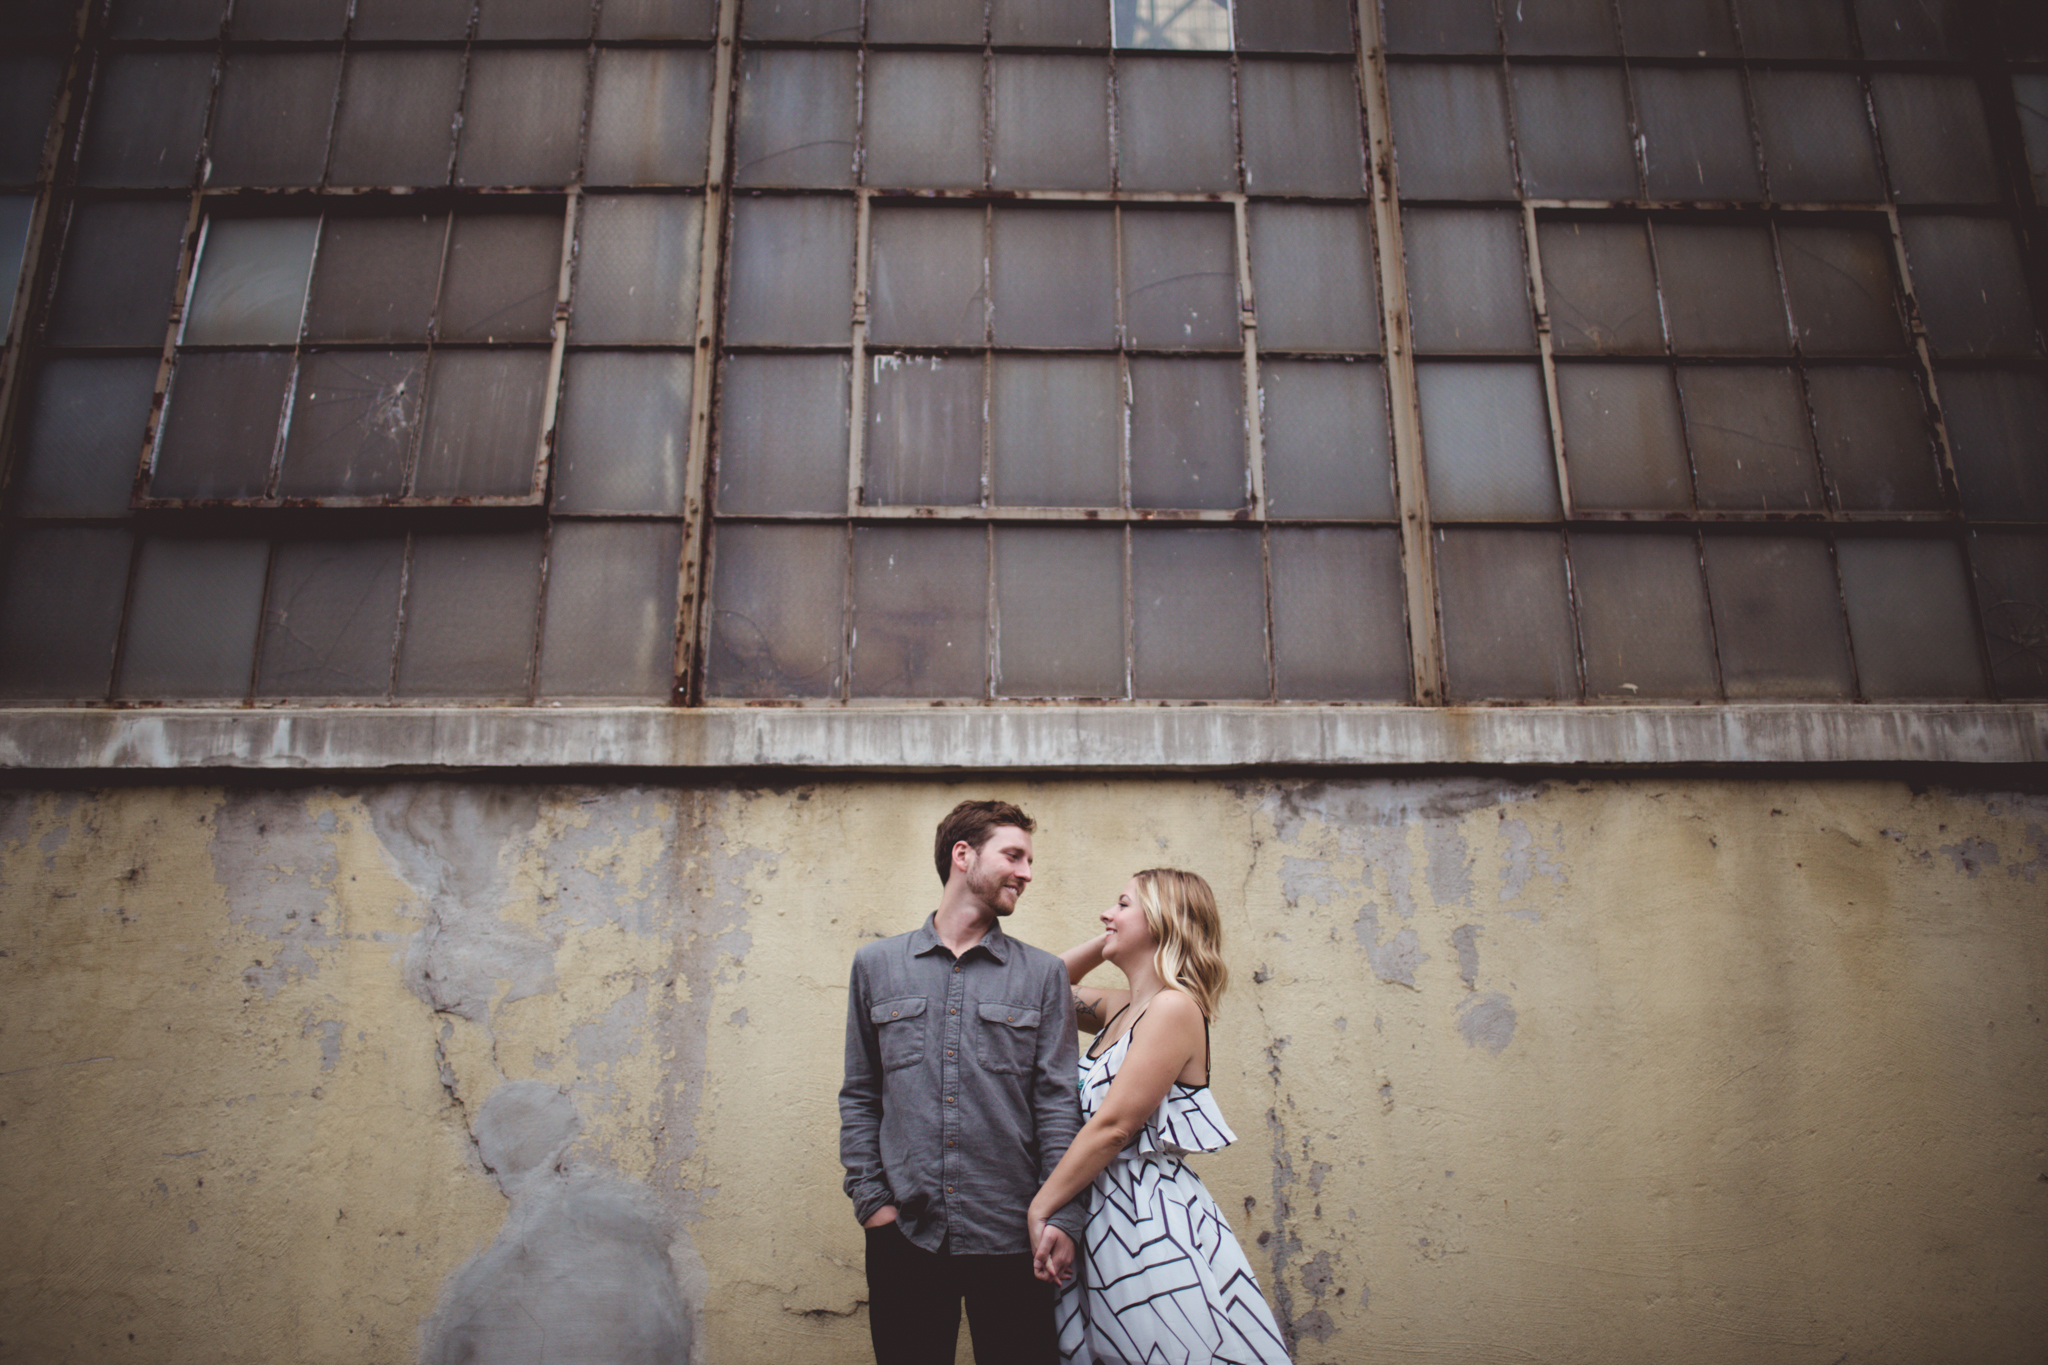 Cambria_Philly_Engagement_Photography-7576.jpg